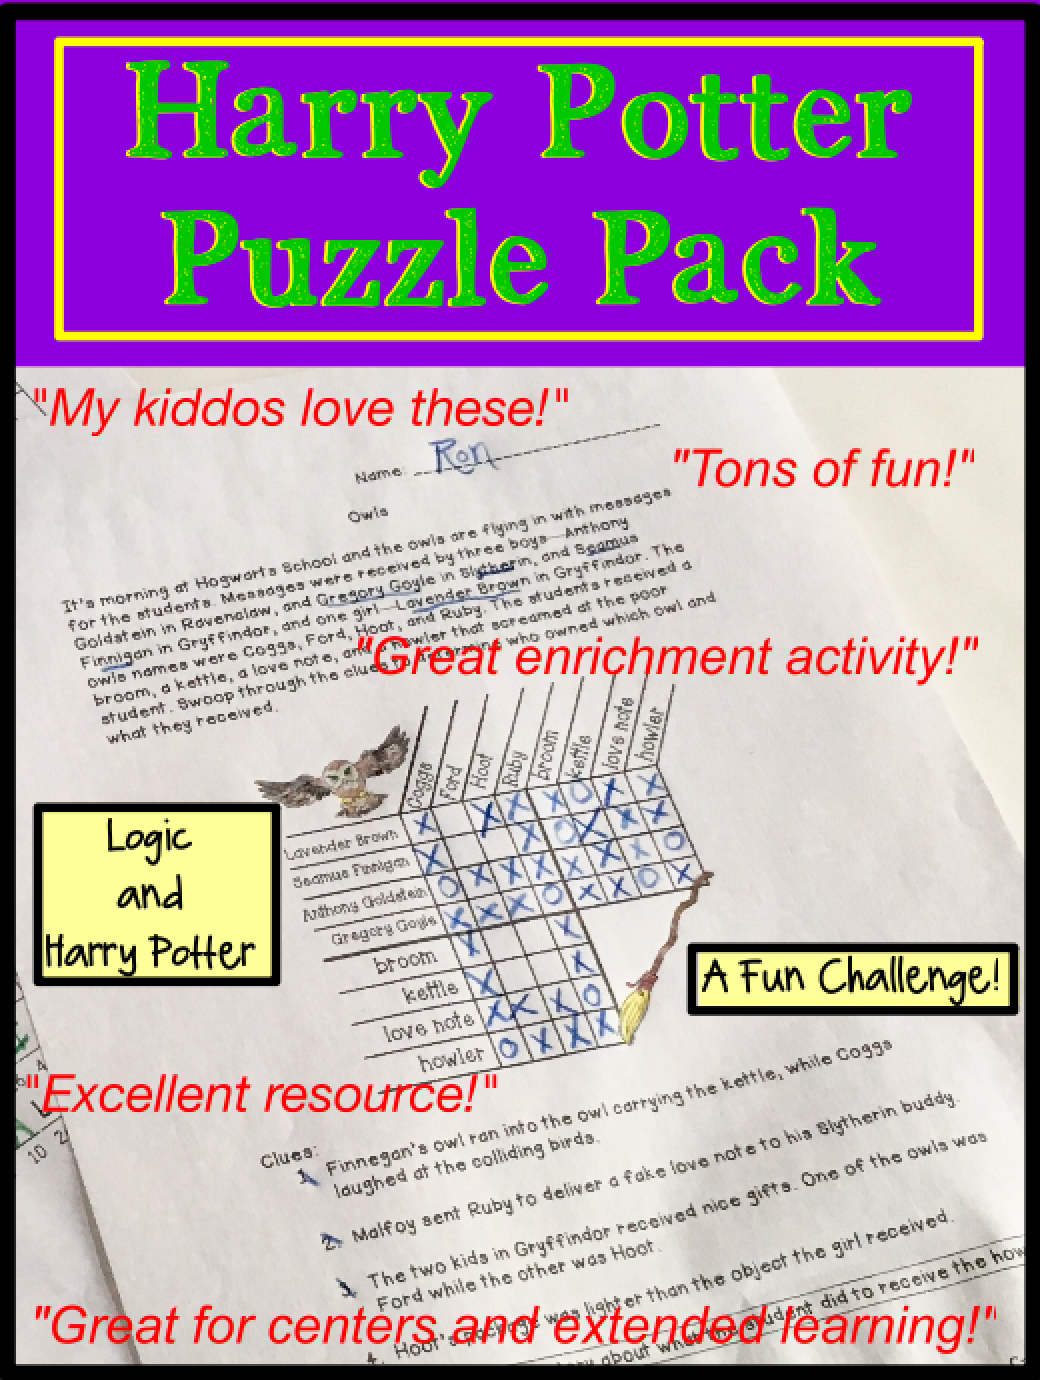 Printable Harry Potter Logic Puzzle Worksheets For Kids Will Provide Hard Critical Thinking Challenges With An Logic Puzzles Learning Math Whole Brain Teaching